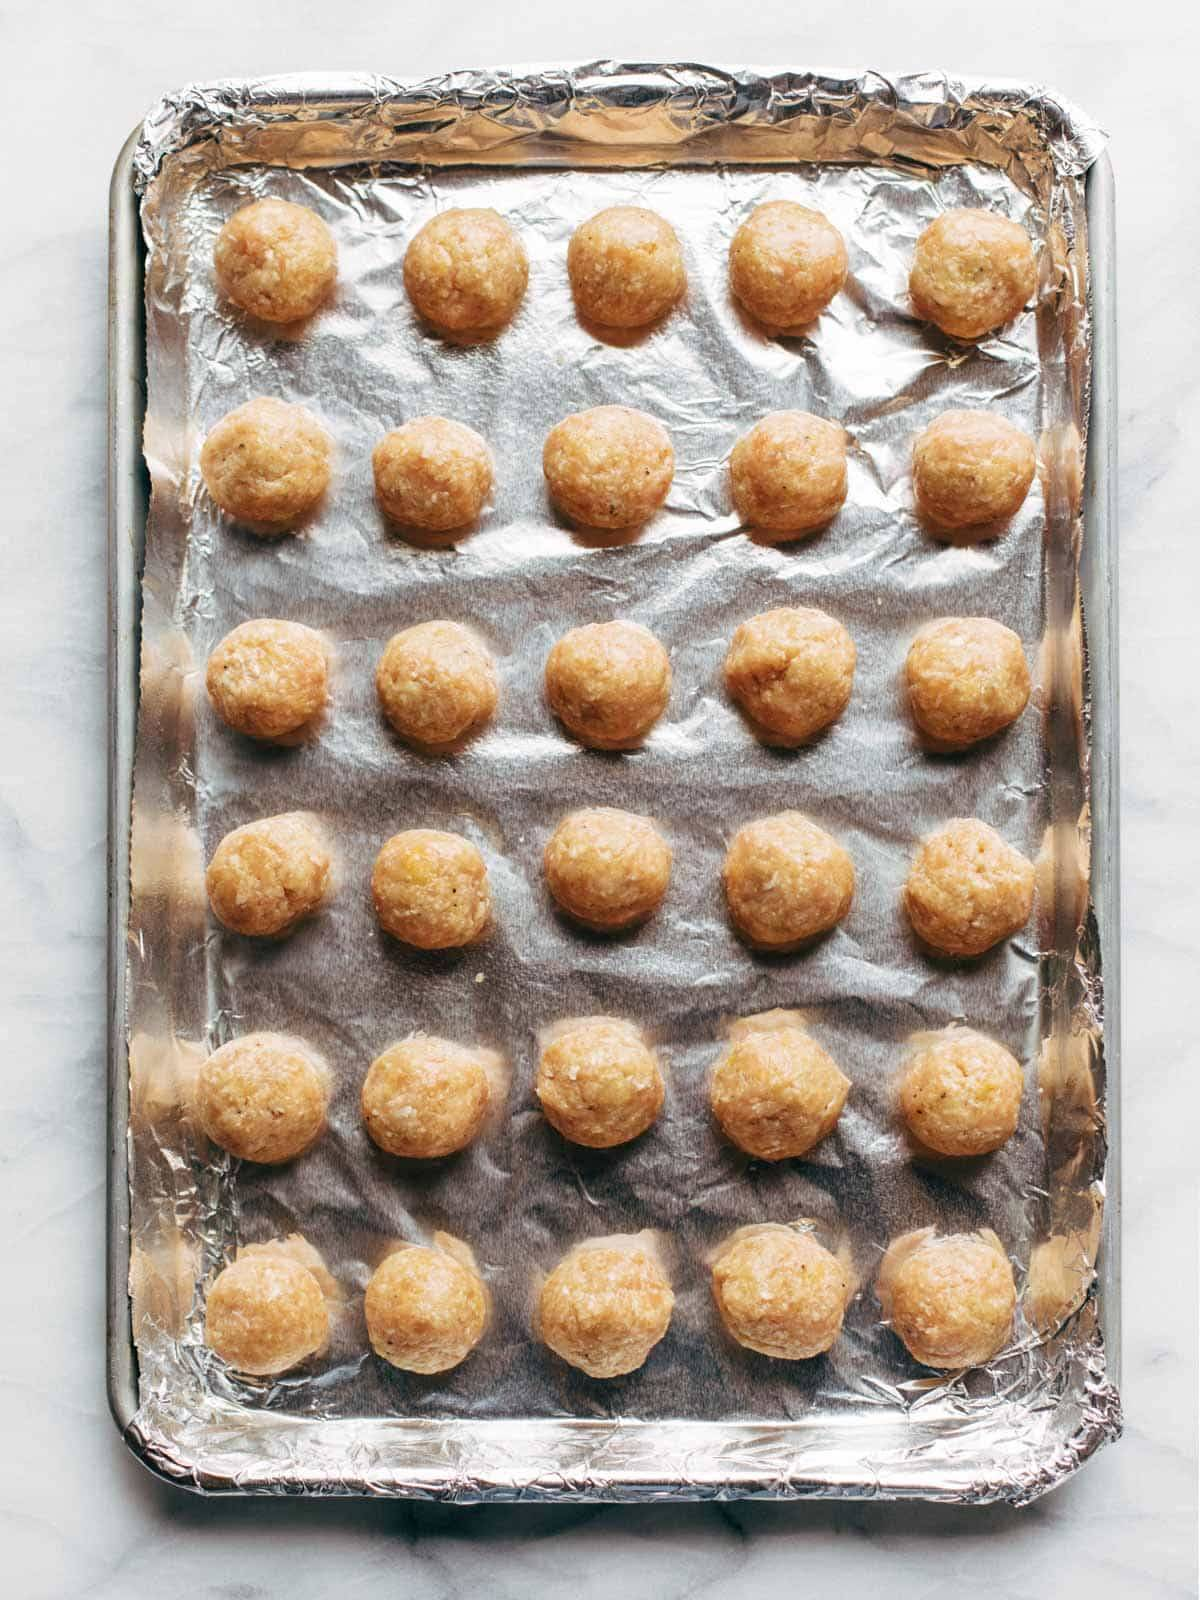 Unbaked Chicken Meatballs on a sheet pan.